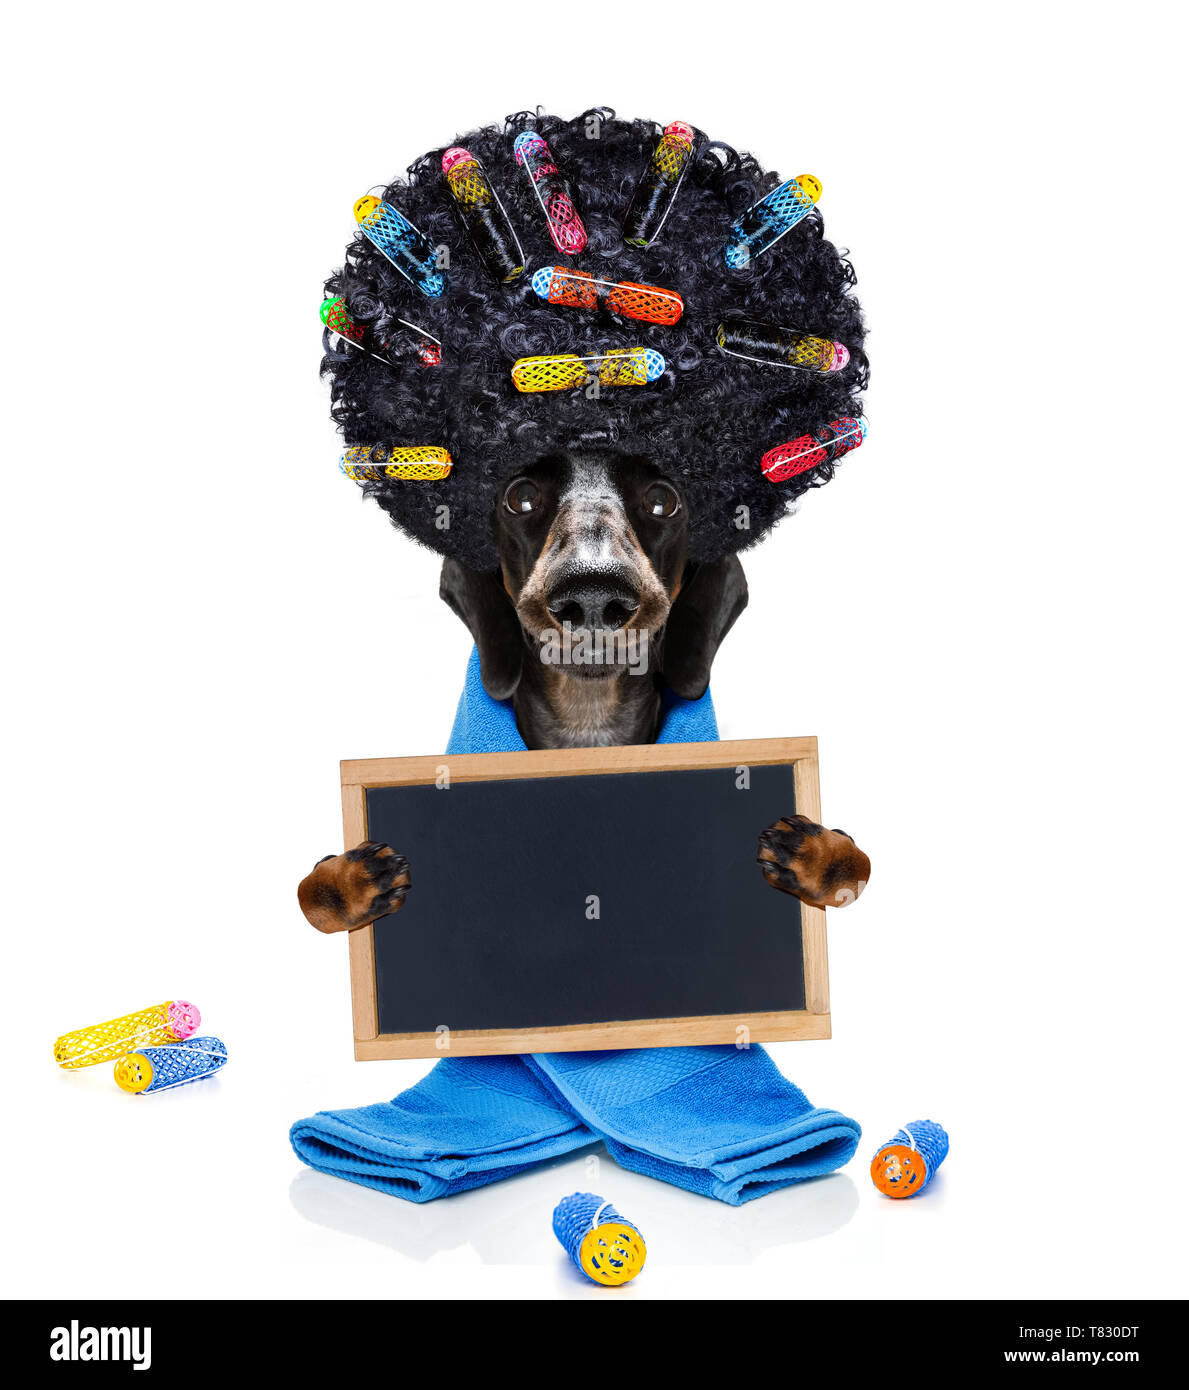 sausage dachshund dog  with hair rulers  and afro curly wig  hair at the hairdresser  behind a blank empty placard or banner, isolated on white backgr - Stock Image